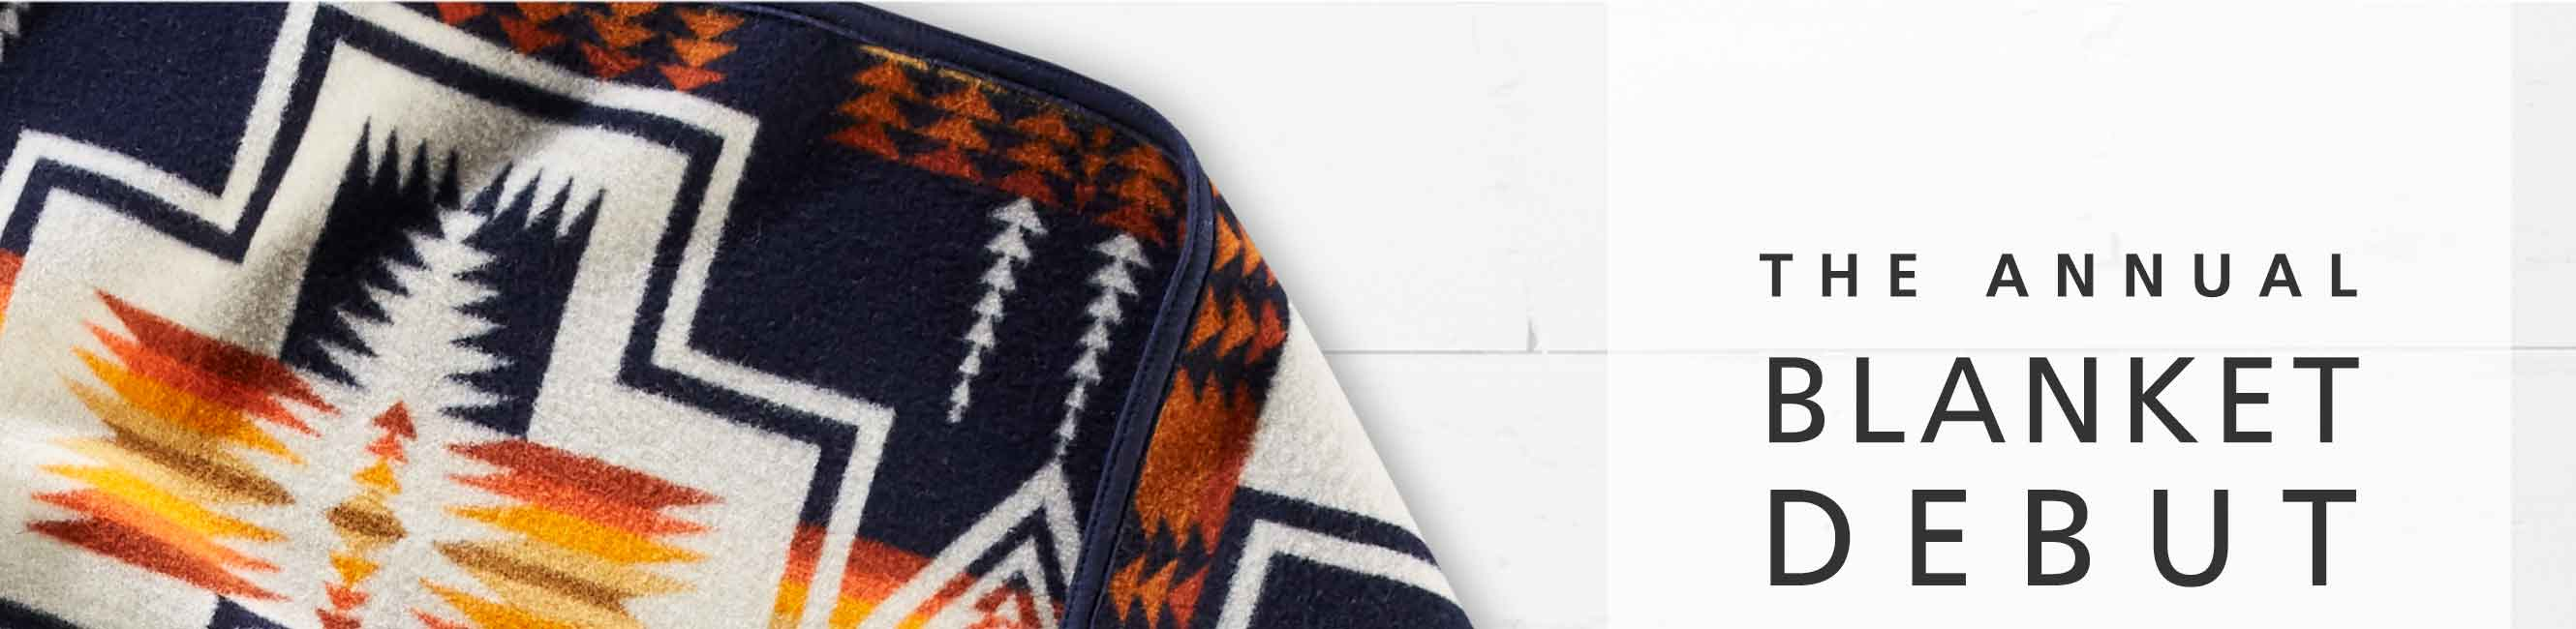 THE ANNUAL BLANKET DEBUT, featuring a navy geometric Harding patterned blanket